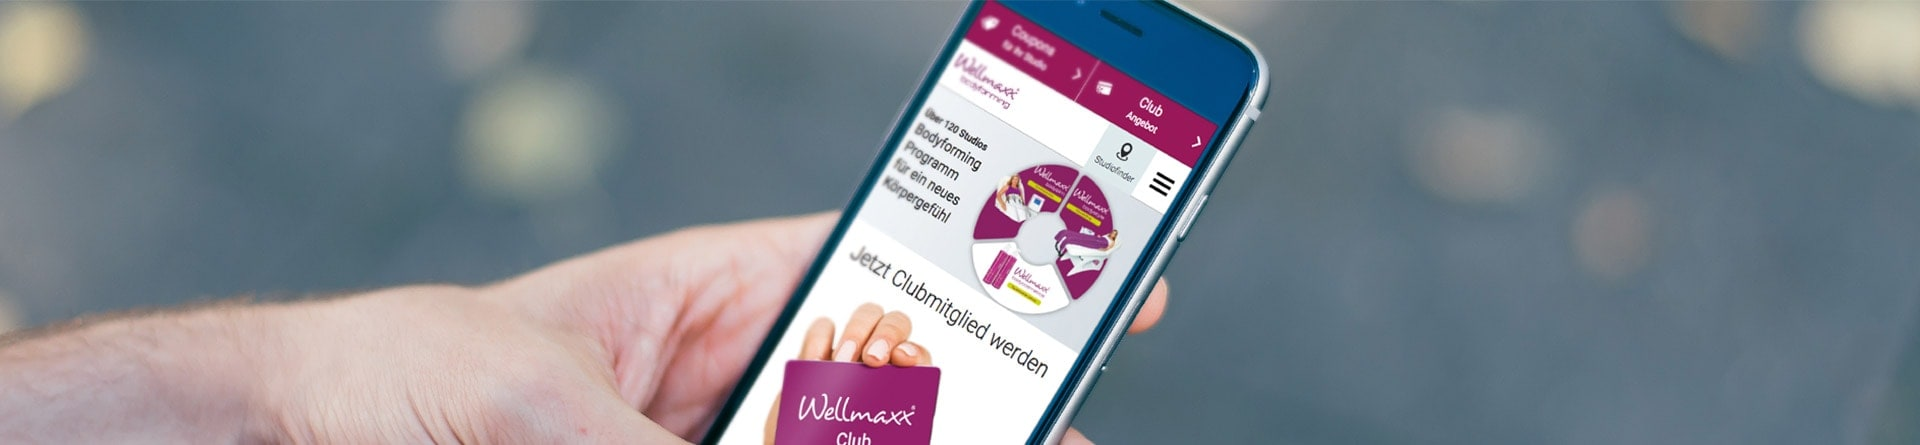 WELLMAXX bodyforming Newsletter